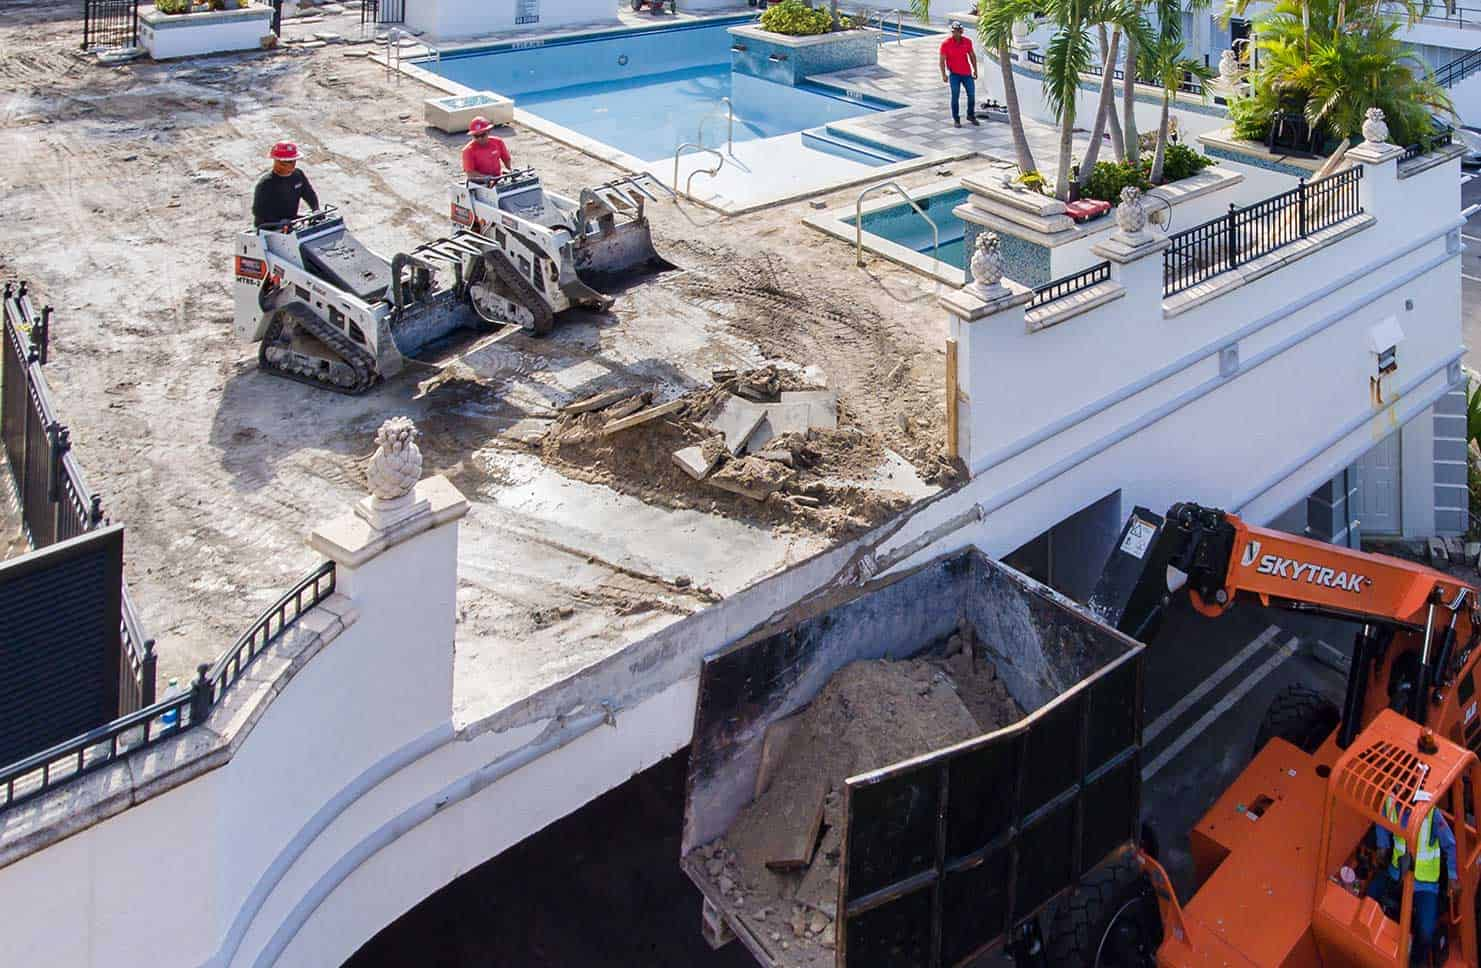 Wildcat Removing dirt and debris off of rooftop pool deck